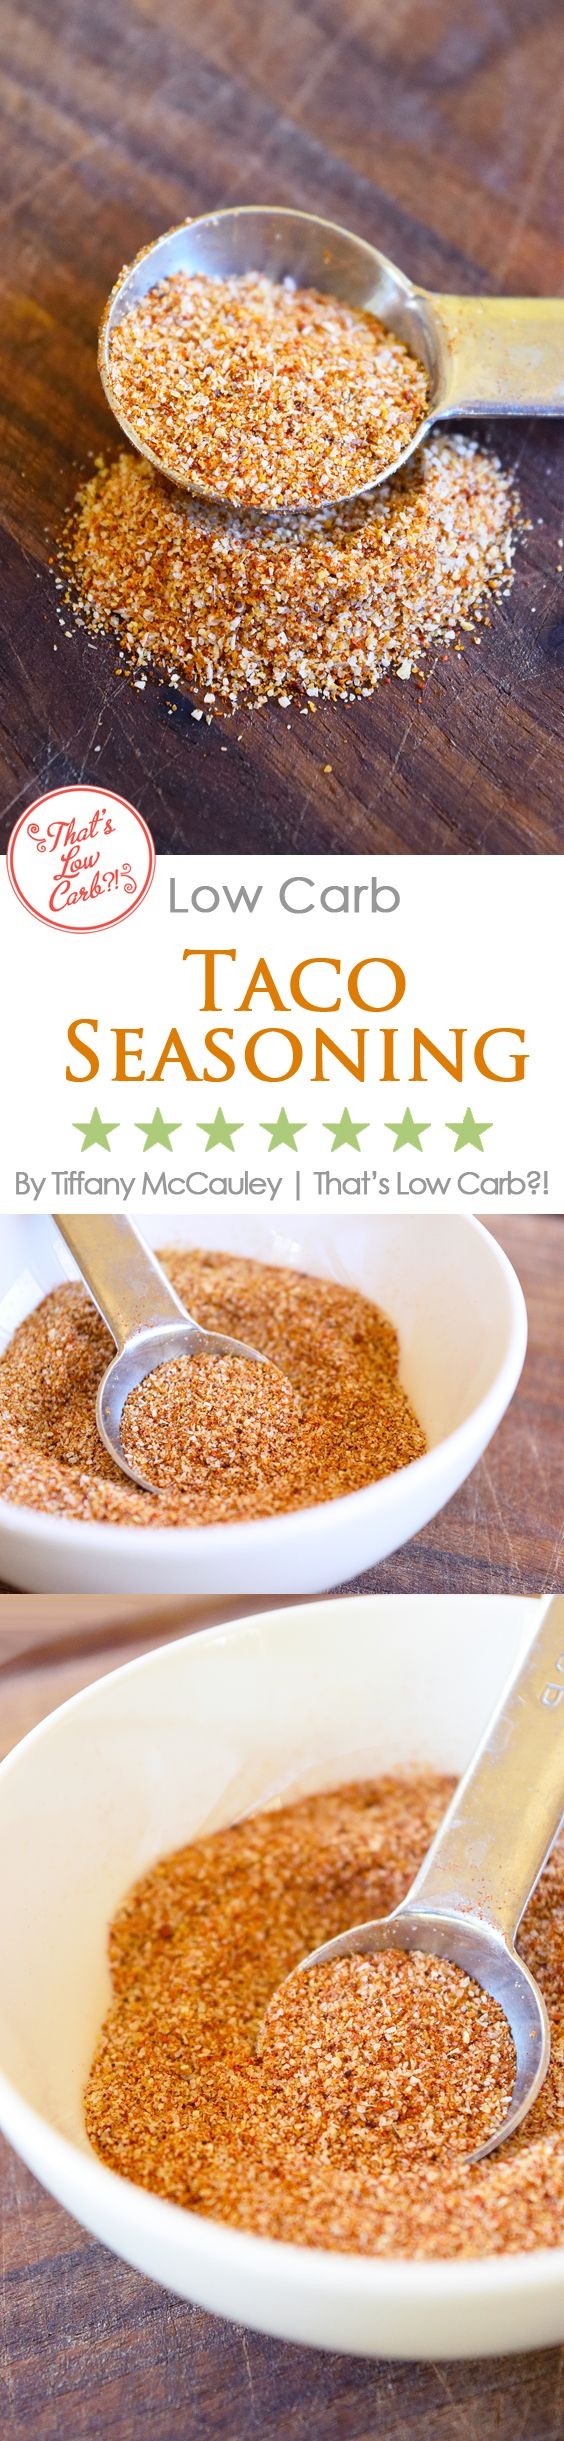 Low Carb Recipes | Taco Seasoning Recipe | Homeade Taco Seasoning ~ https://www.thatslowcarb.com